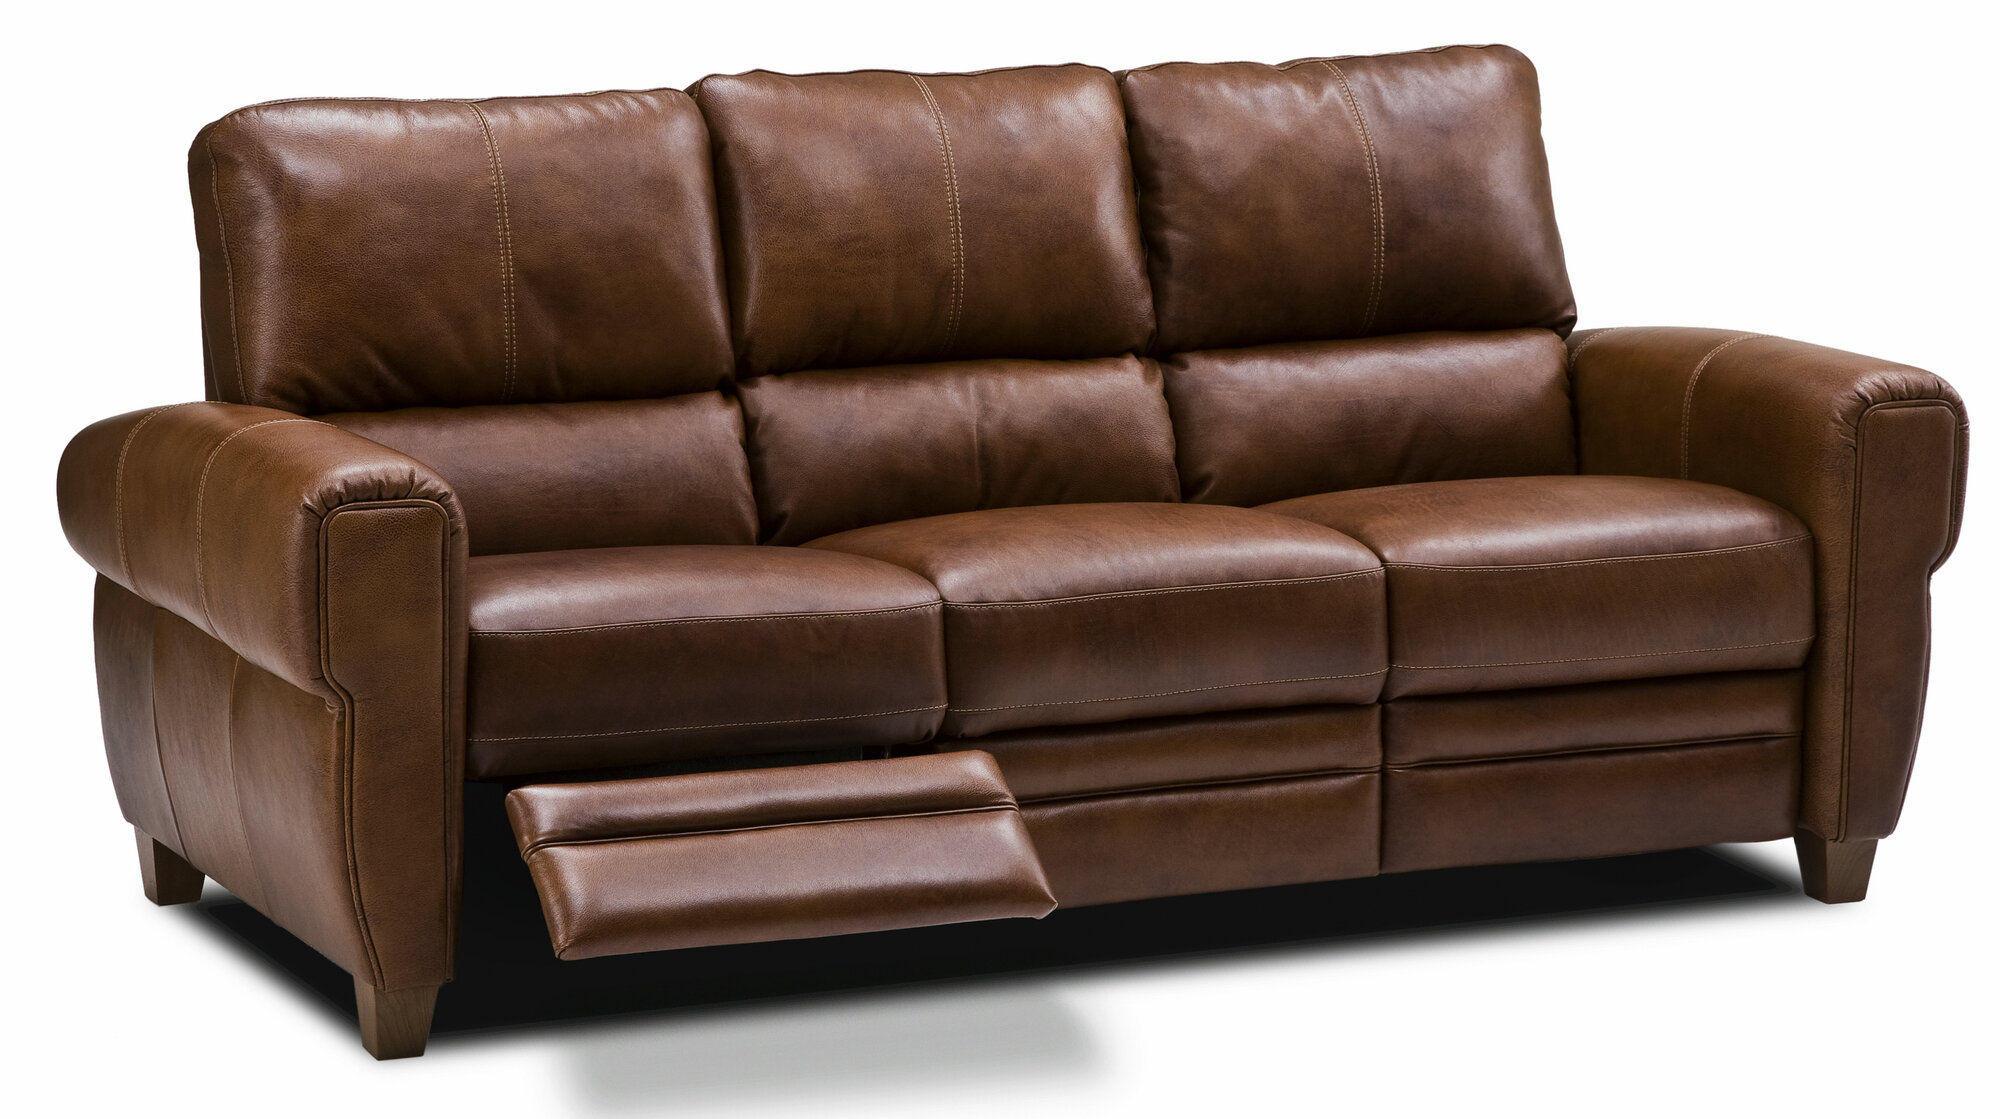 Leather Sofas With Recliners Where Is The Best Place To Buy Recliner Sofa 2 Seater Electric